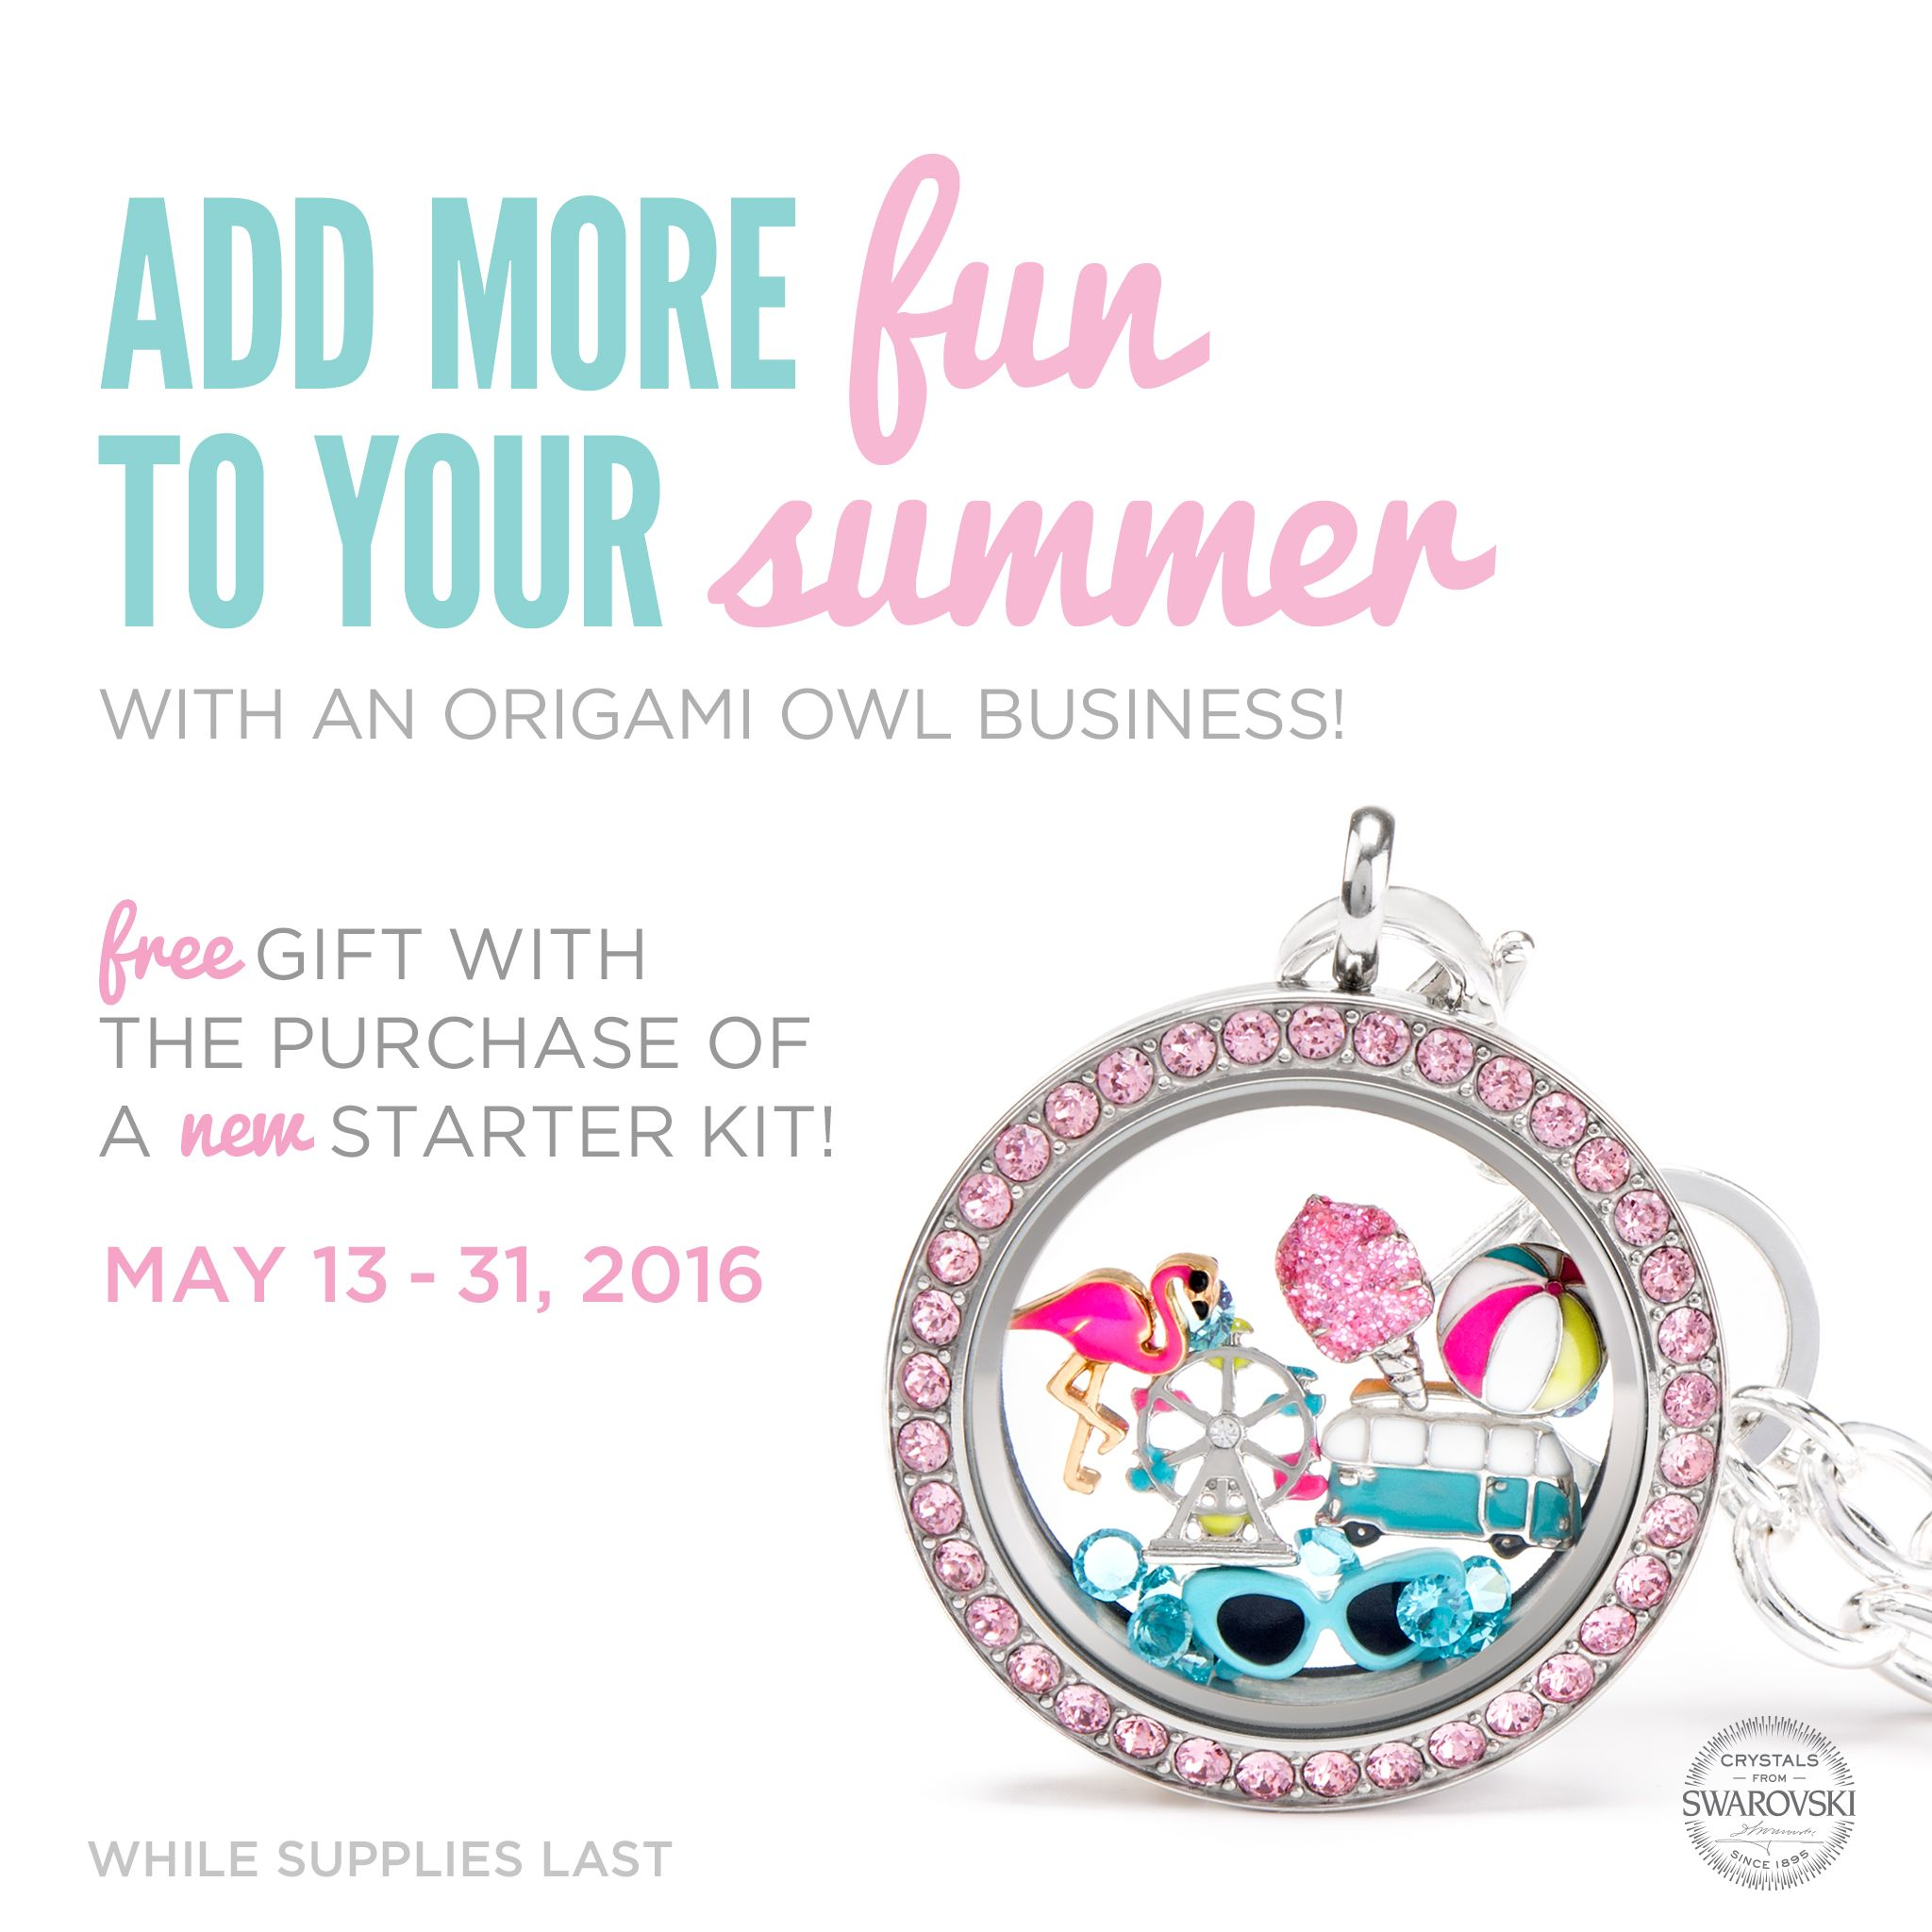 New designer incentive join origami owl and get this in addition join origami owl and get this in addition to your jewelry sample jeuxipadfo Images